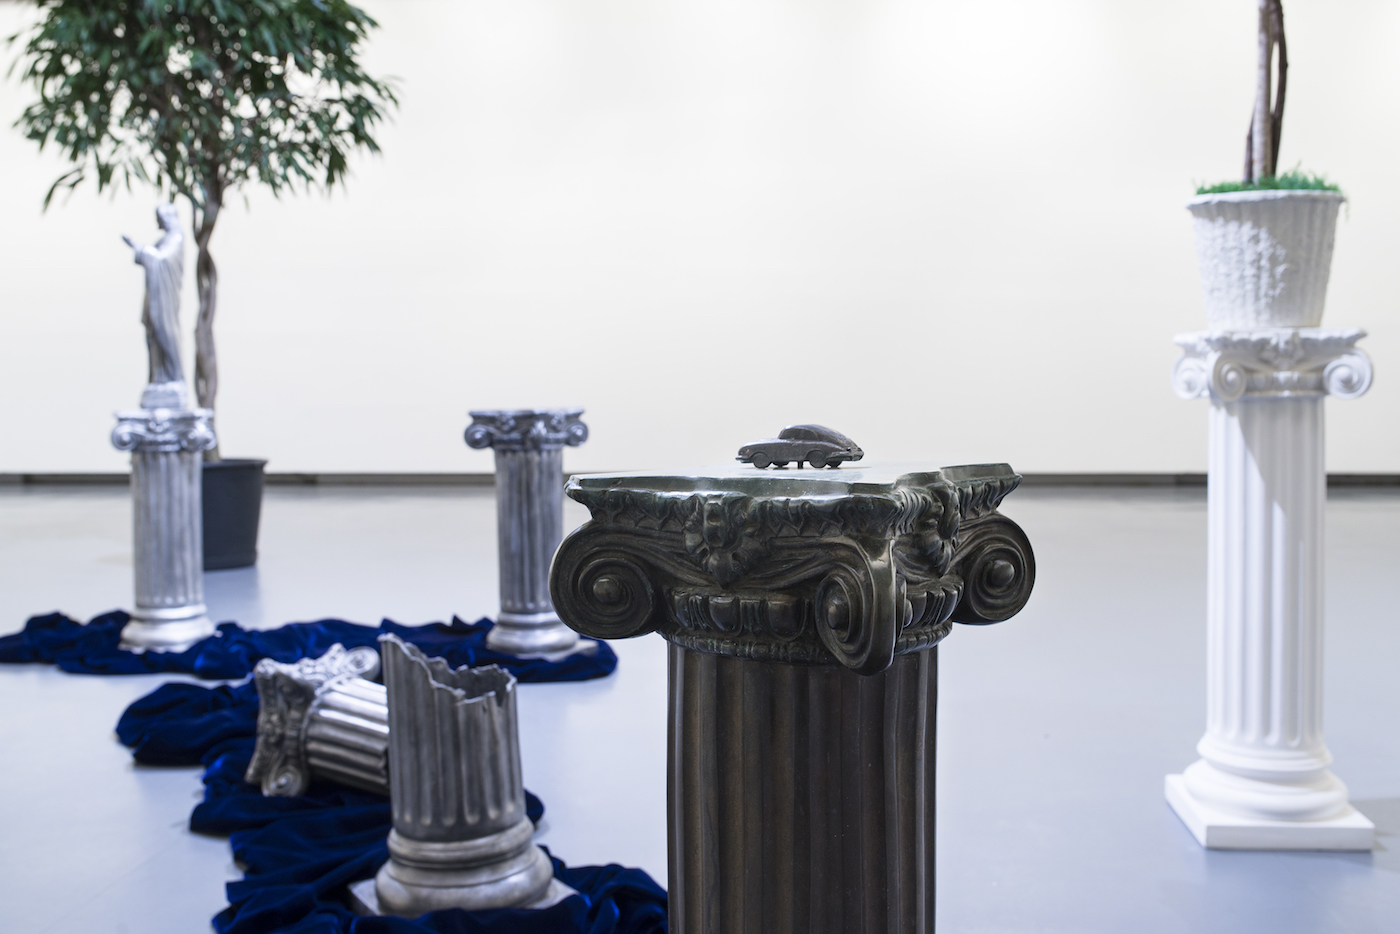 """Lynda Benglis, """"Primary Structures (Paula's Props)"""" (1975) installation view at KODE art museum for Bergen Assembly 2016 (courtesy Cheim & Read, New York; photo by Thor Brødreskift)"""